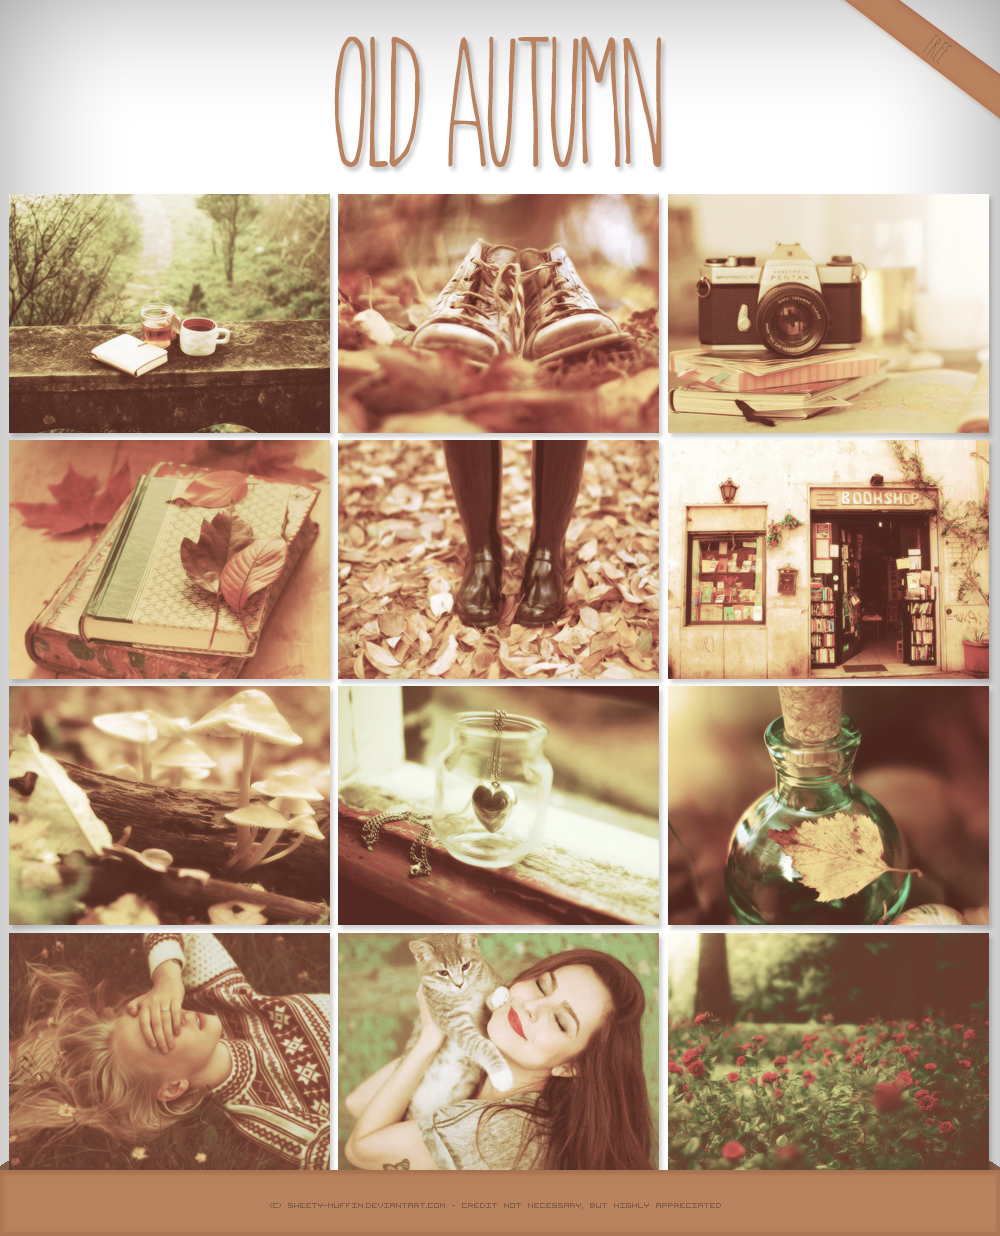 Old Autumn Action by Sweety Muffin